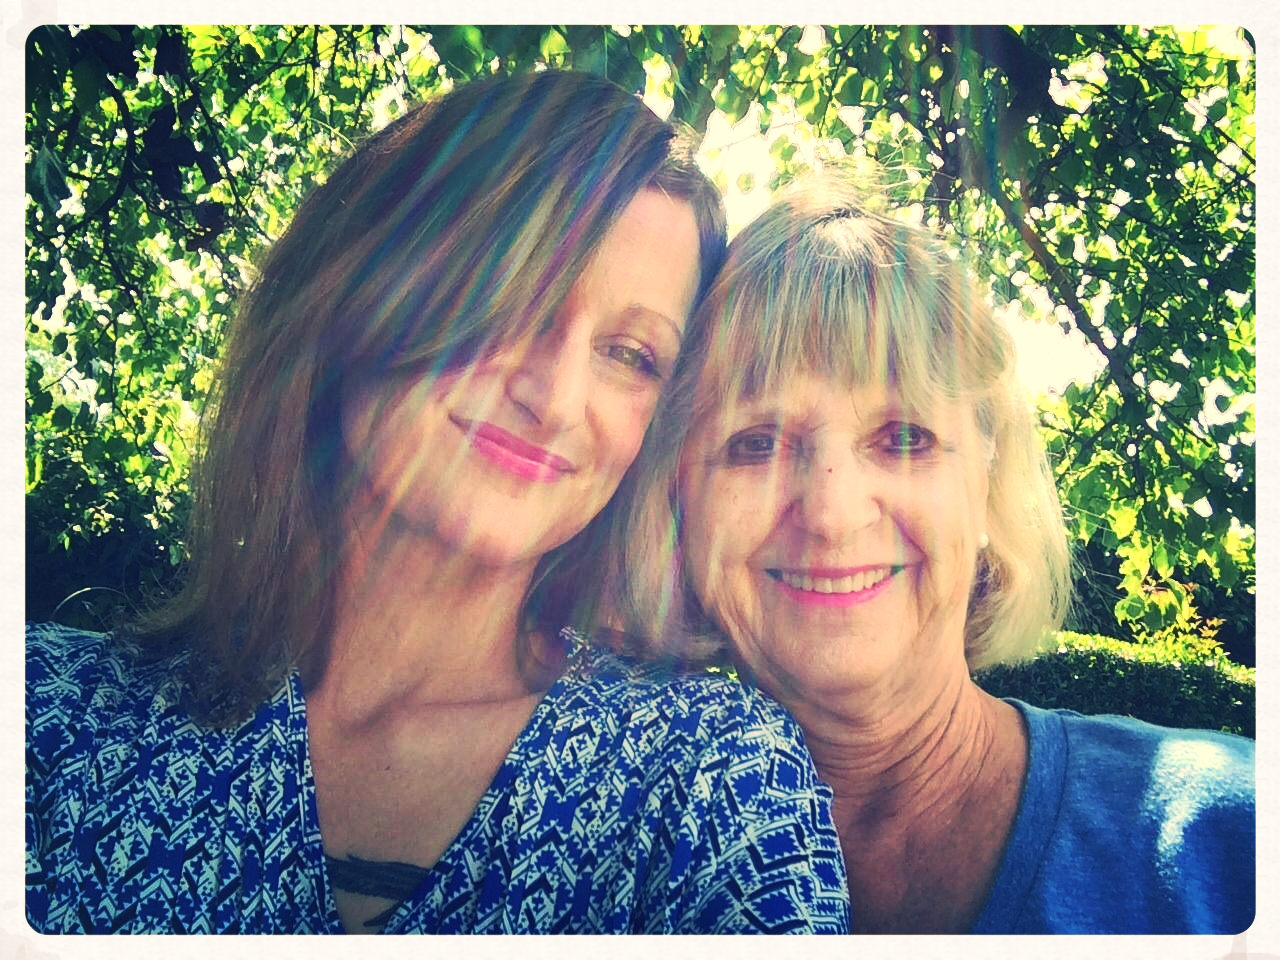 Me and mom, better than ever. Fresno, April 2014.